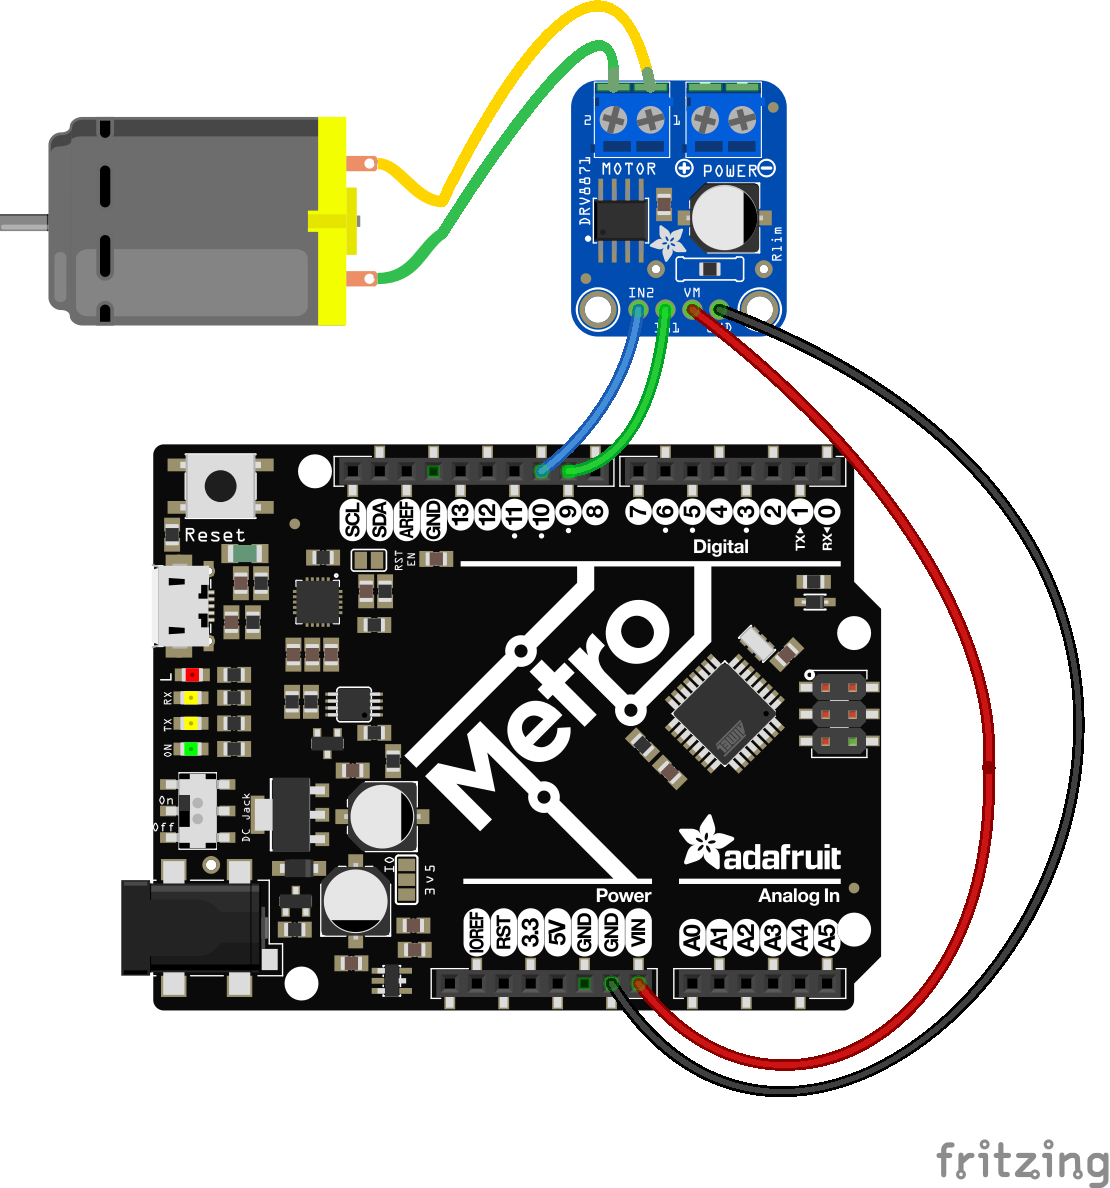 adafruit_products_drv8871_bb.png